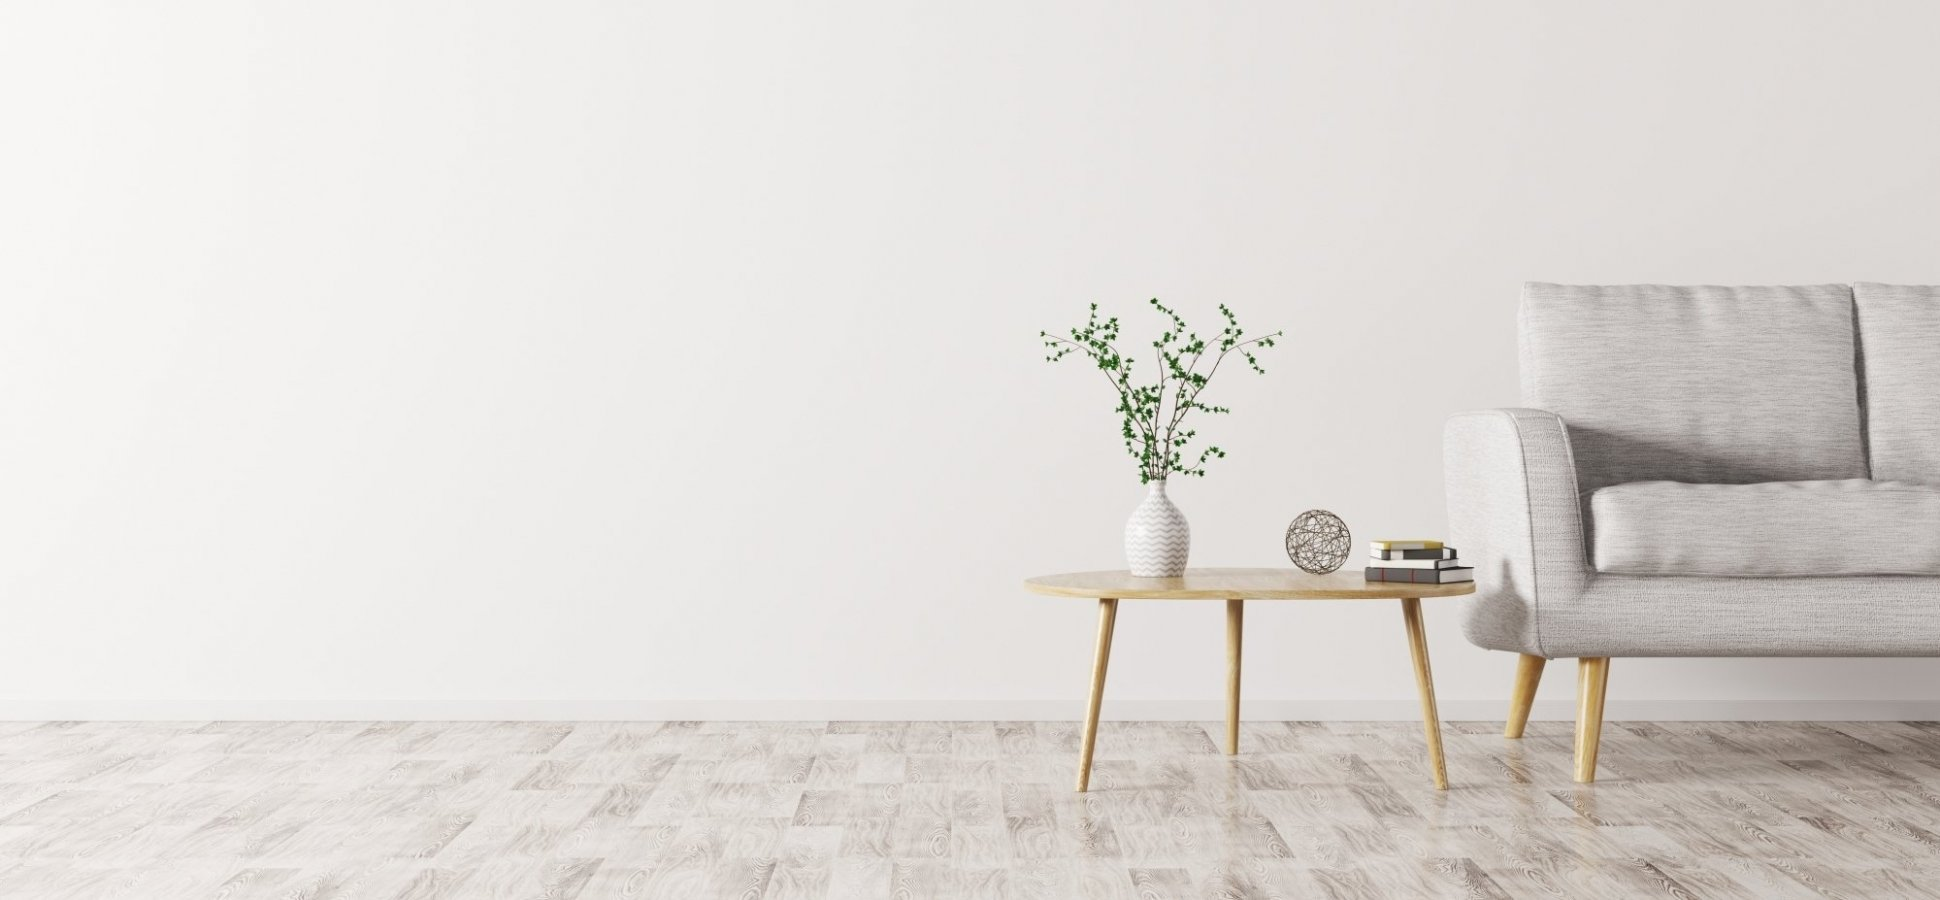 Minimalism is Not, and Never Will Be, Dead